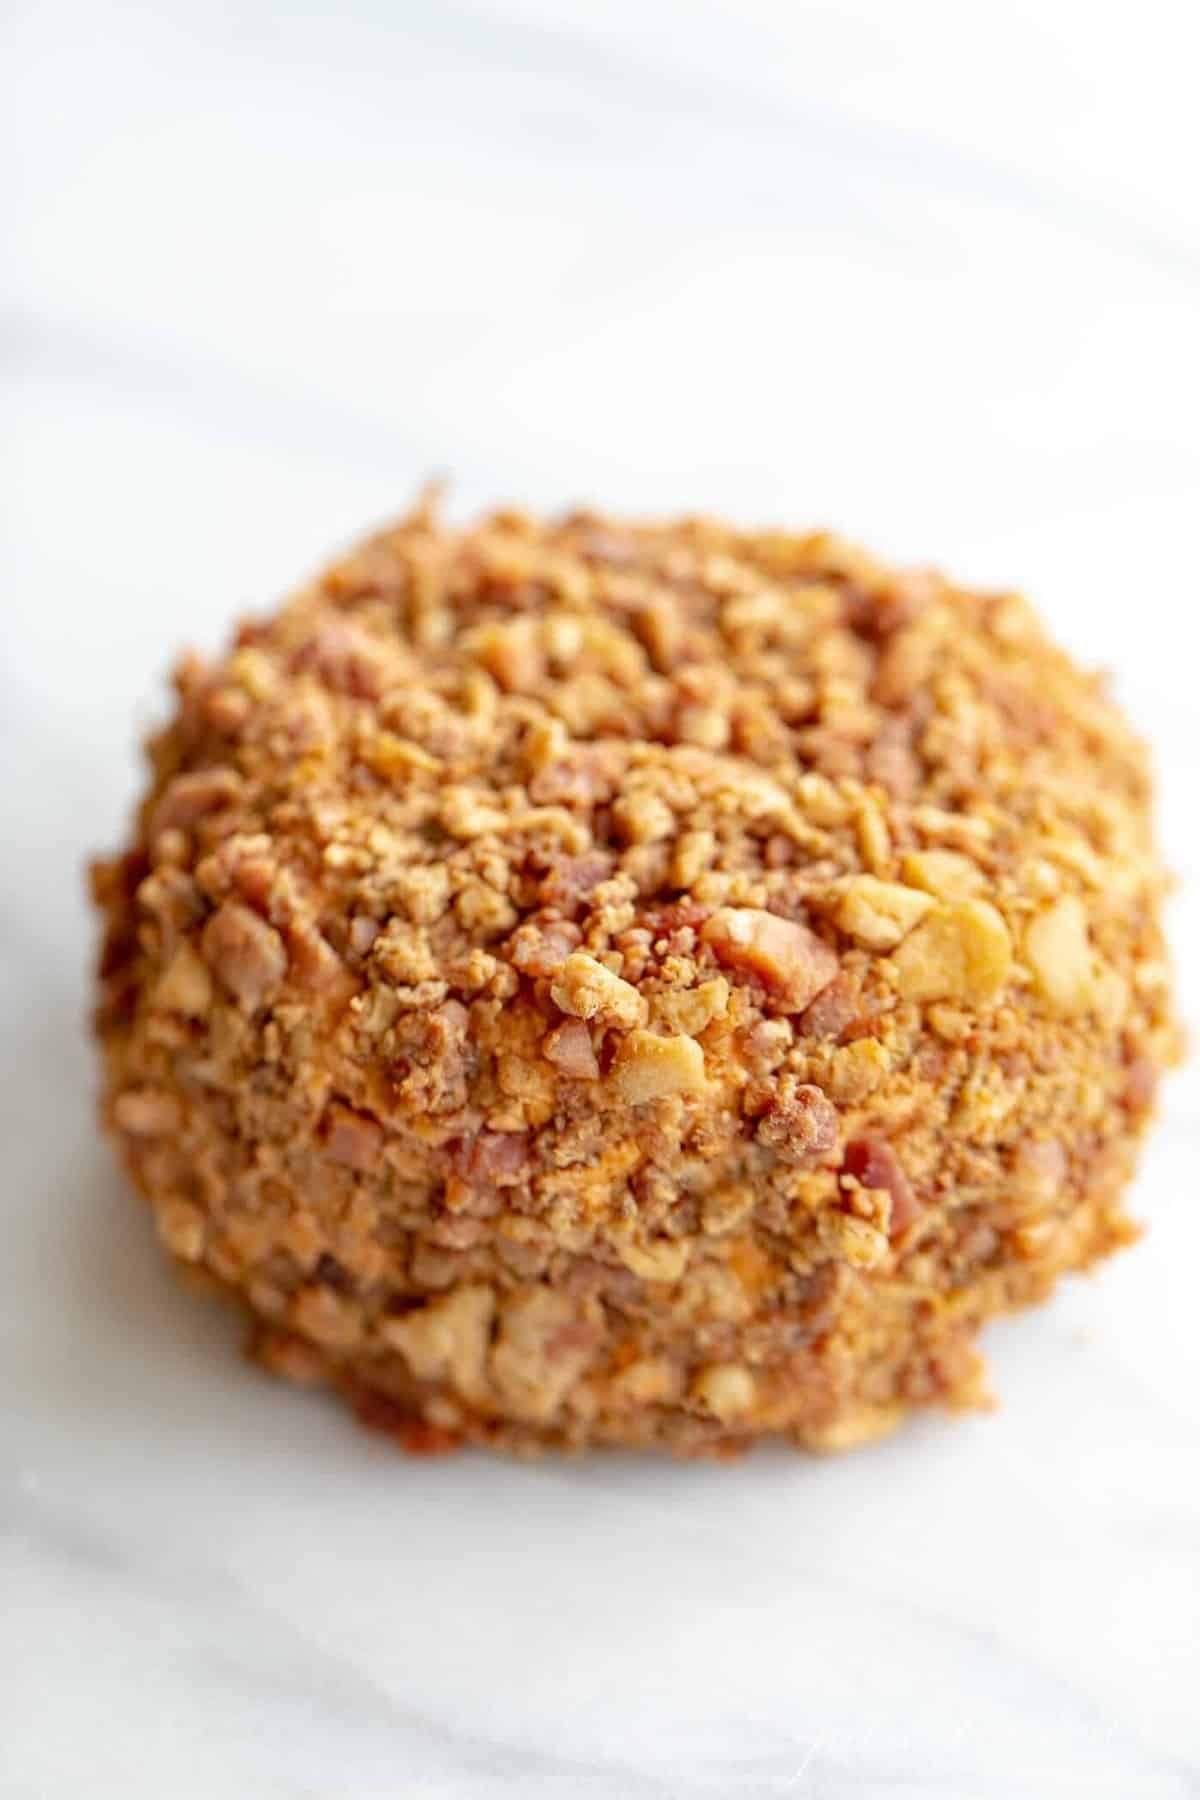 Marble counter top with a bacon covered cheese ball.